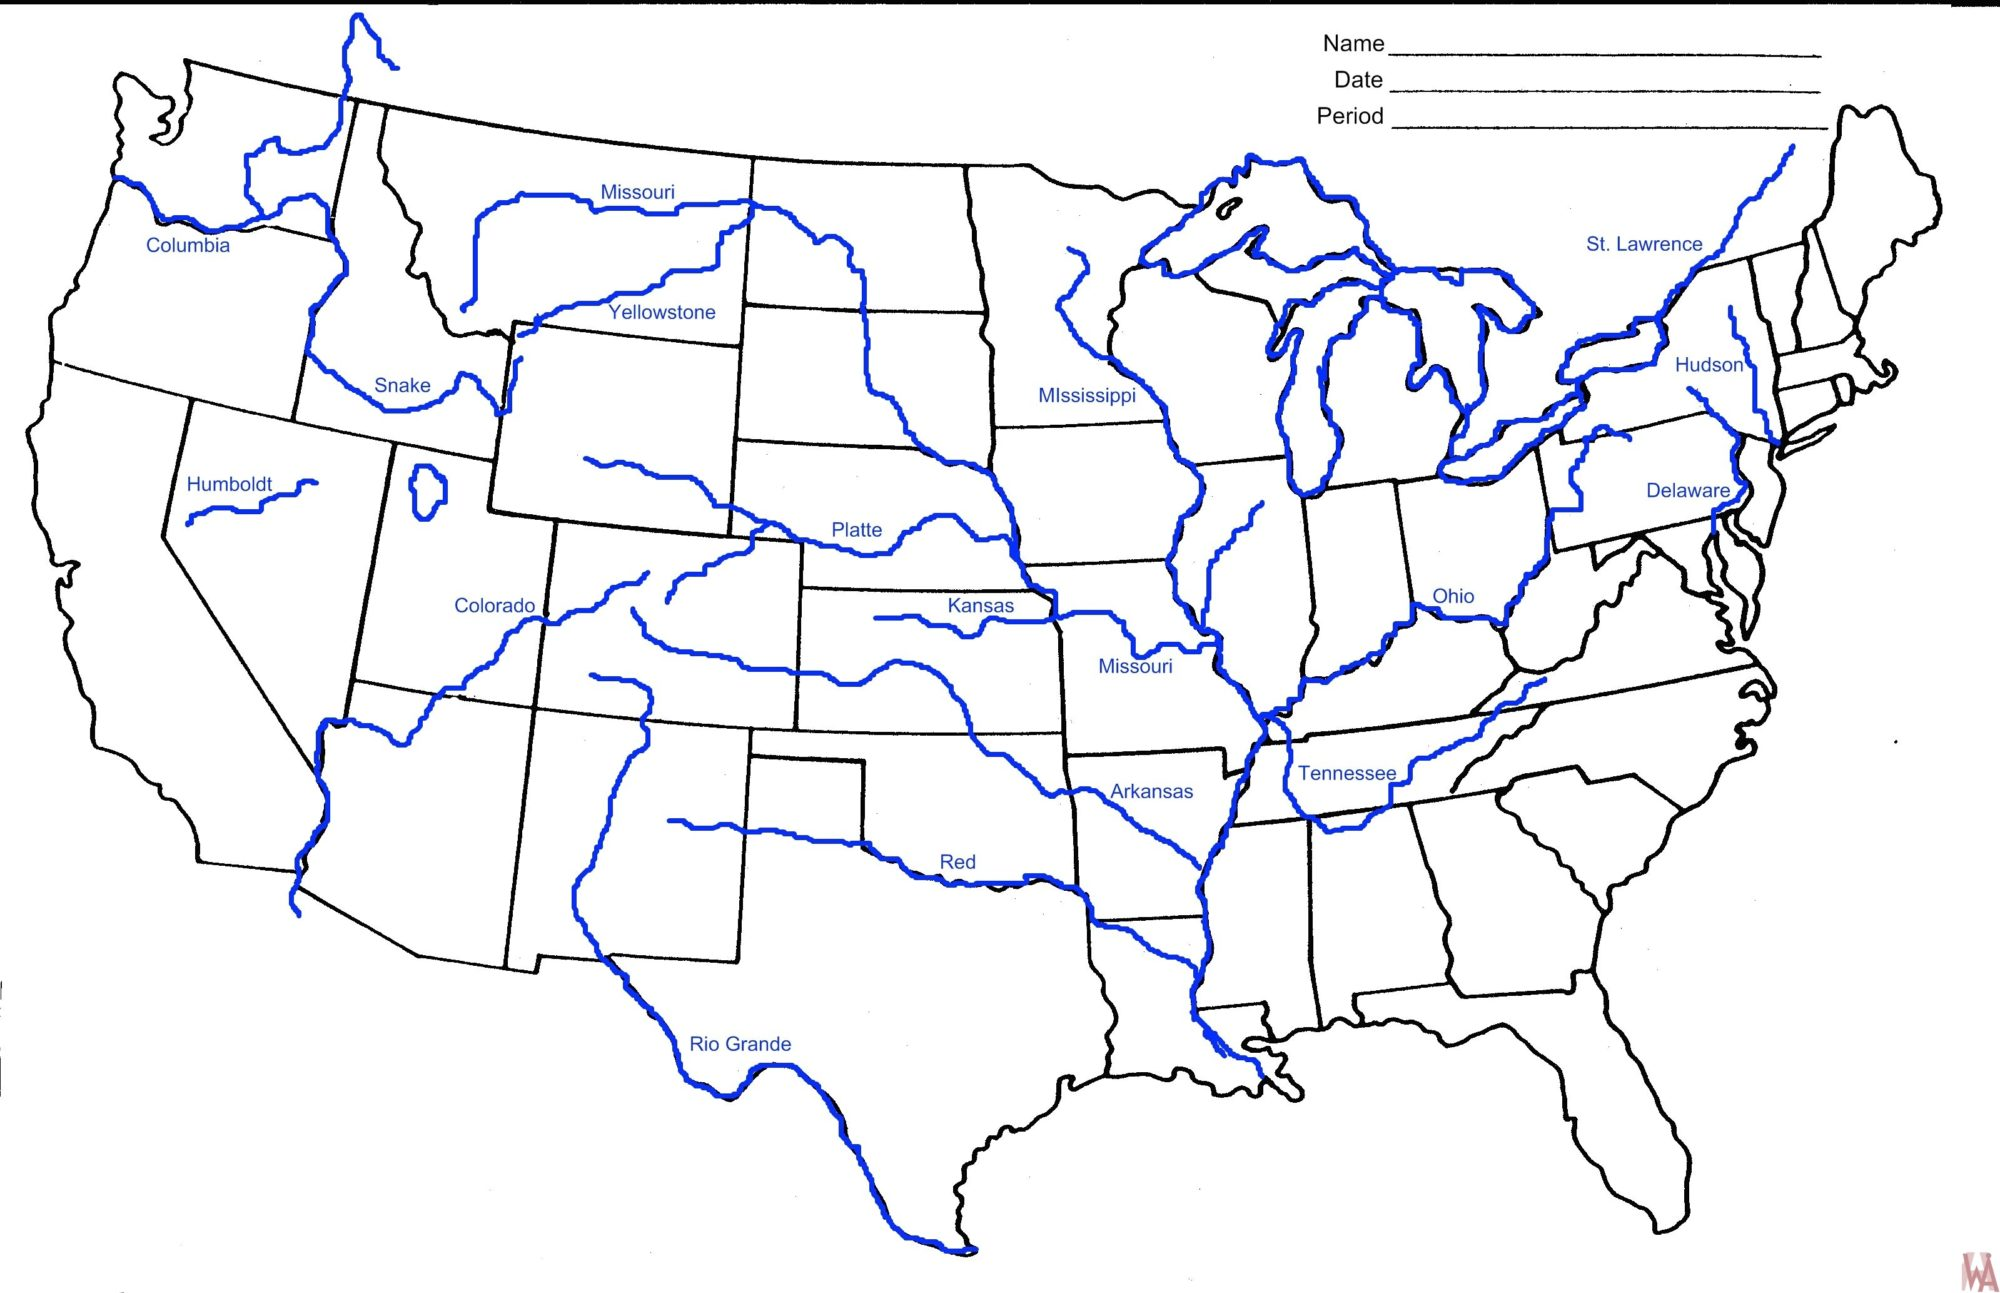 Blank outline map of the United States With Rivers | WhatsAnswer